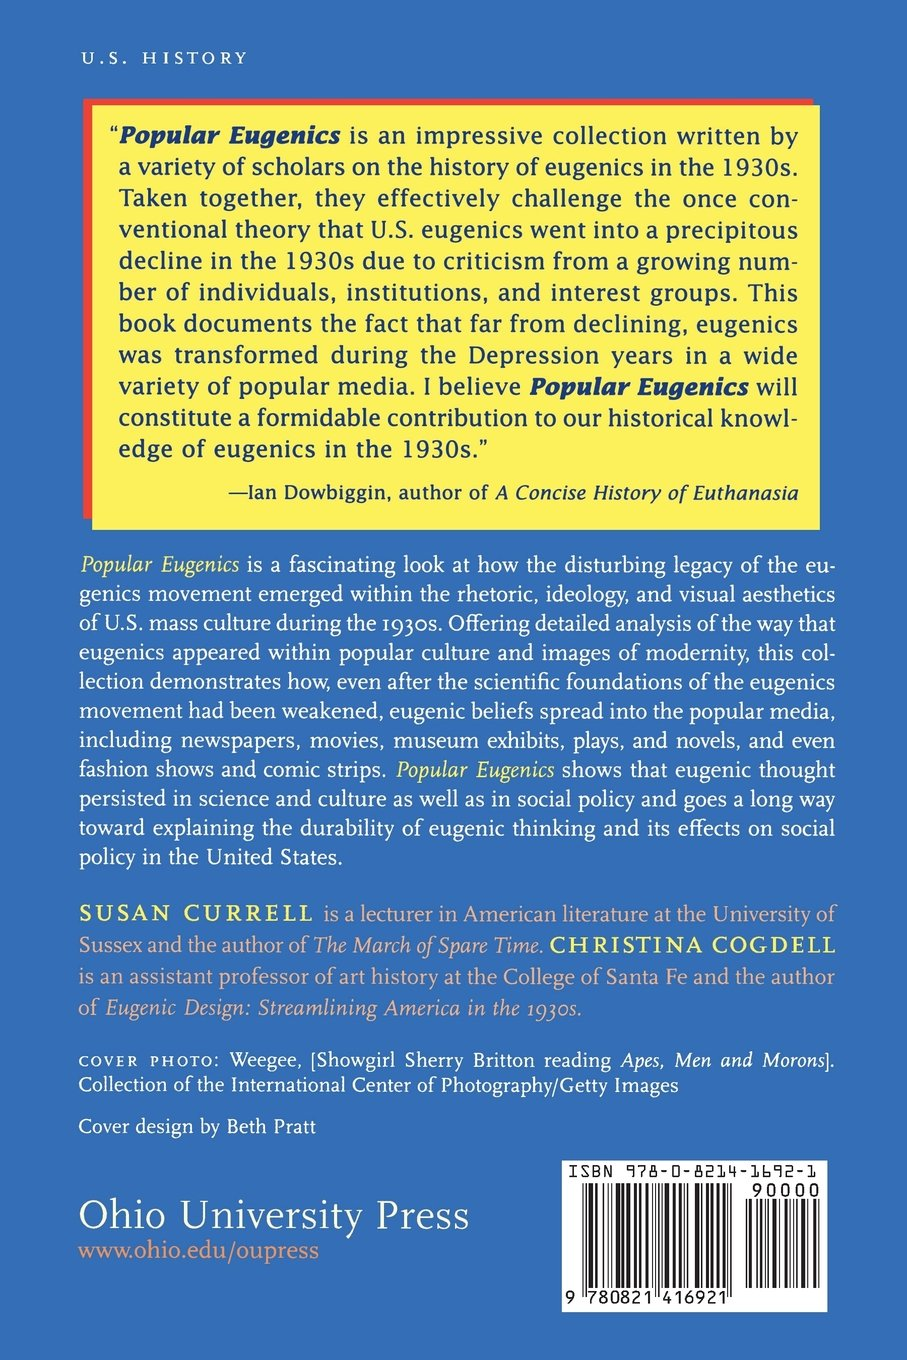 Popular Eugenics: National Efficiency and American Mass Culture in the 1930s: Susan Currell, Christina Cogdell: 9780821416921: Amazon.com: Books